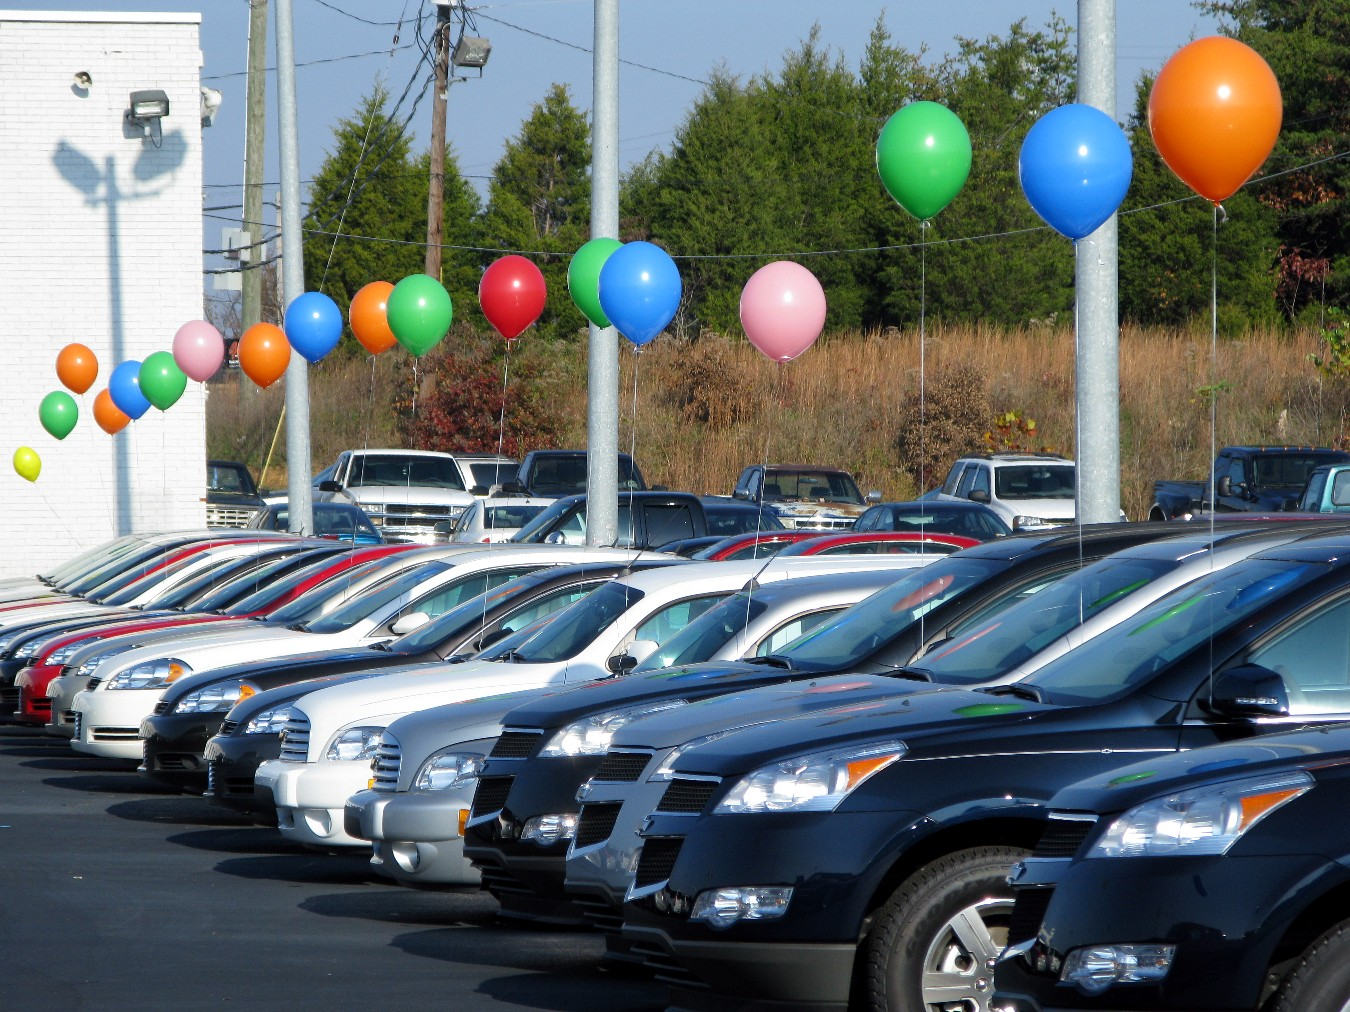 There are several Things to Know Before Buying a Car